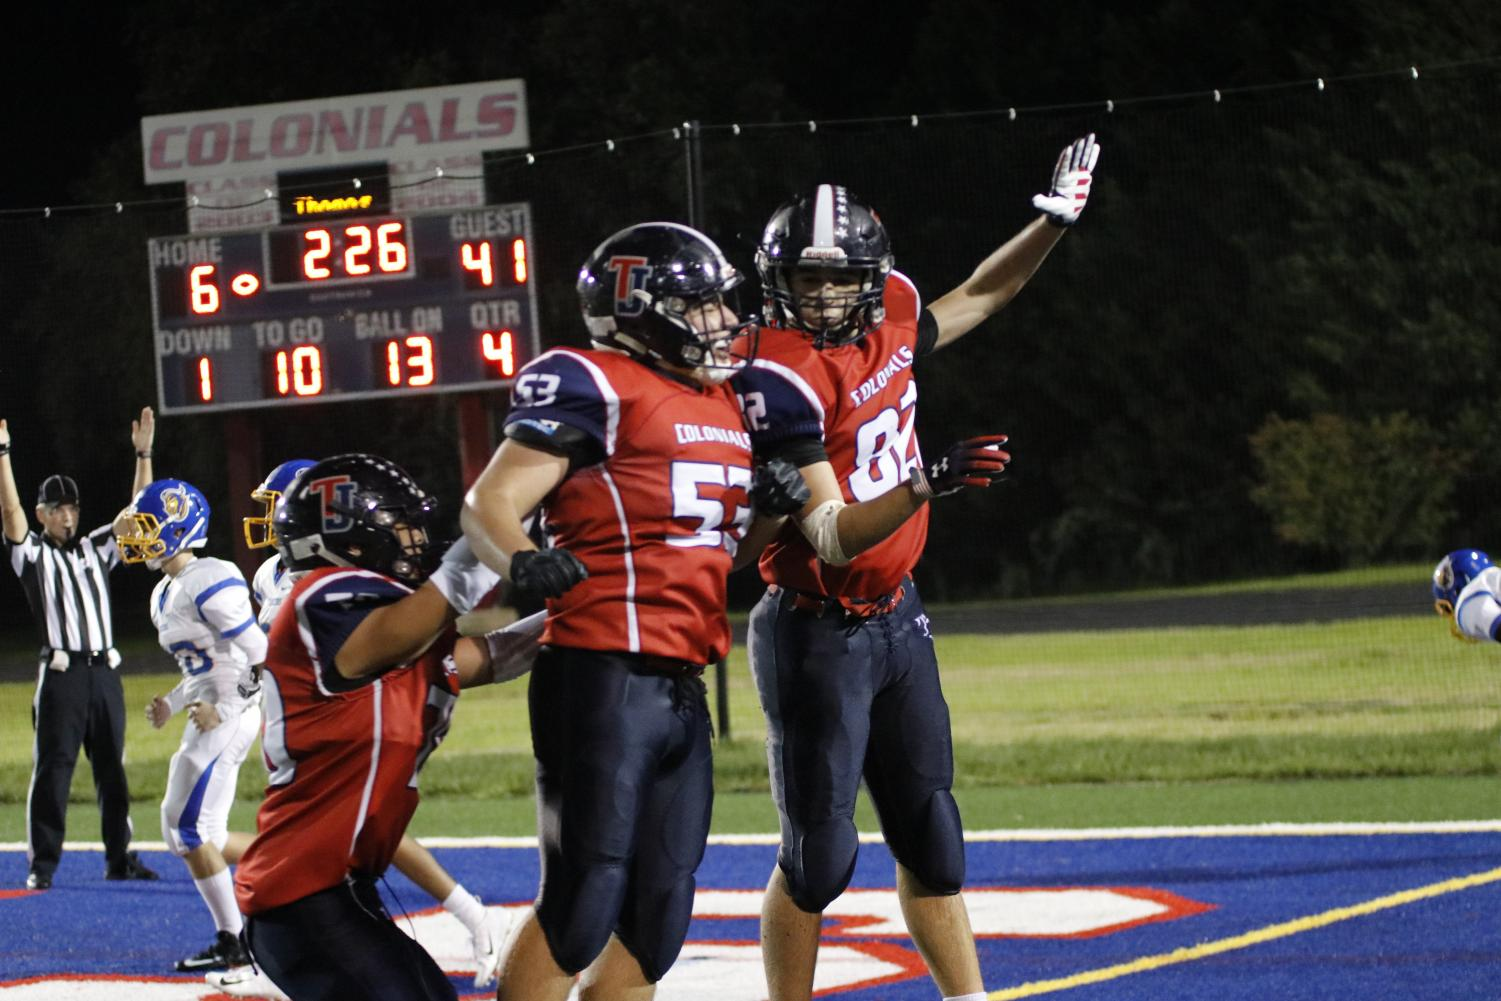 A group of Colonials celebrate after scoring a touchdown during last September's Back to School Bash game